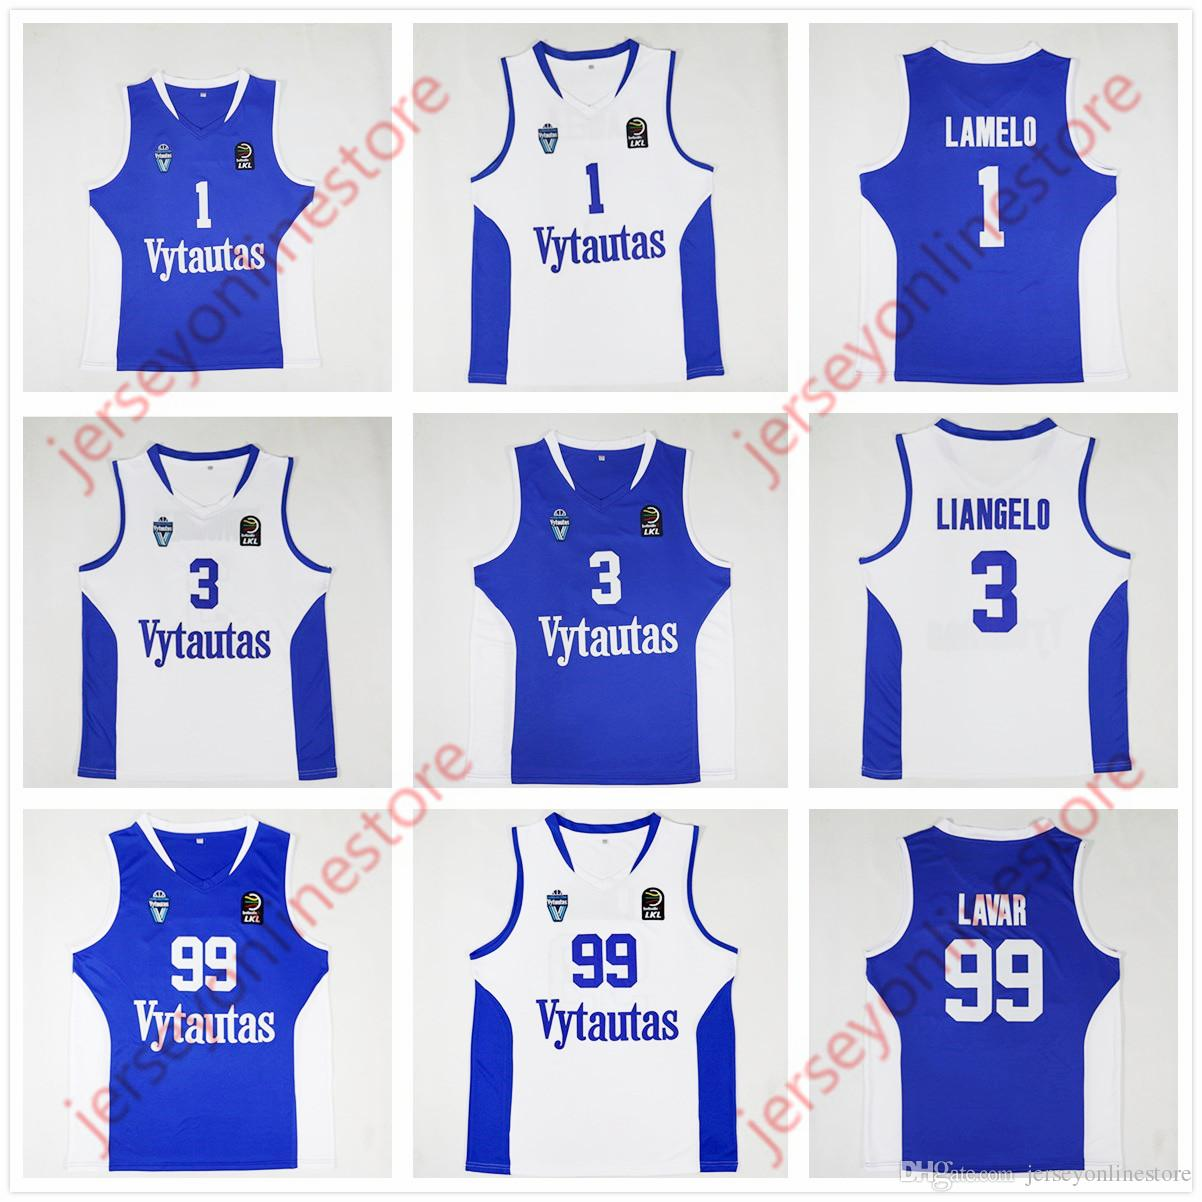 e9259dfbde76 2019 Cheap Mens Lithuania Prienu Vytautas 3  LiAngelo Ball Jersey Blue  White Stitched 1  LaMelo Ball 99  LaVar Ball Basketball Jerseys Embroidery  From ...